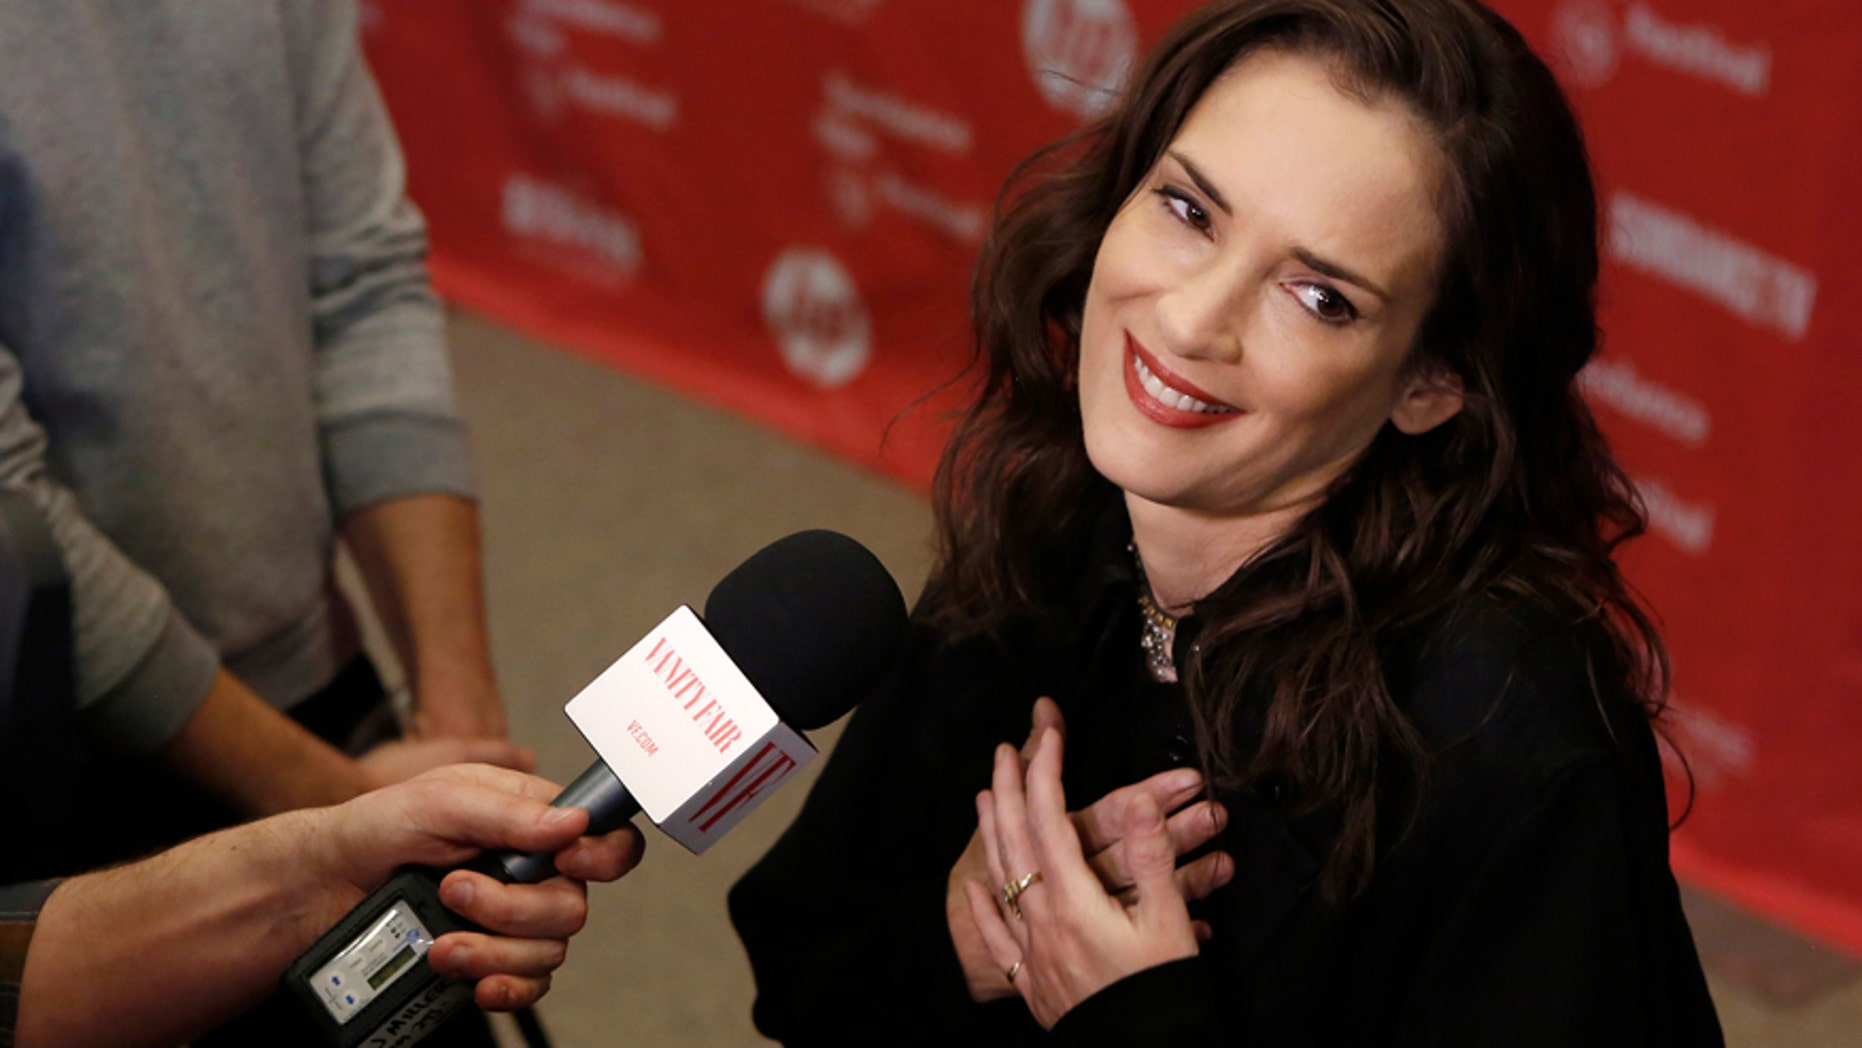 """Actress Winona Ryder attends the premiere of """"Experimenter"""" at the Sundance Film Festival in Park City, Utah, January 25, 2015."""